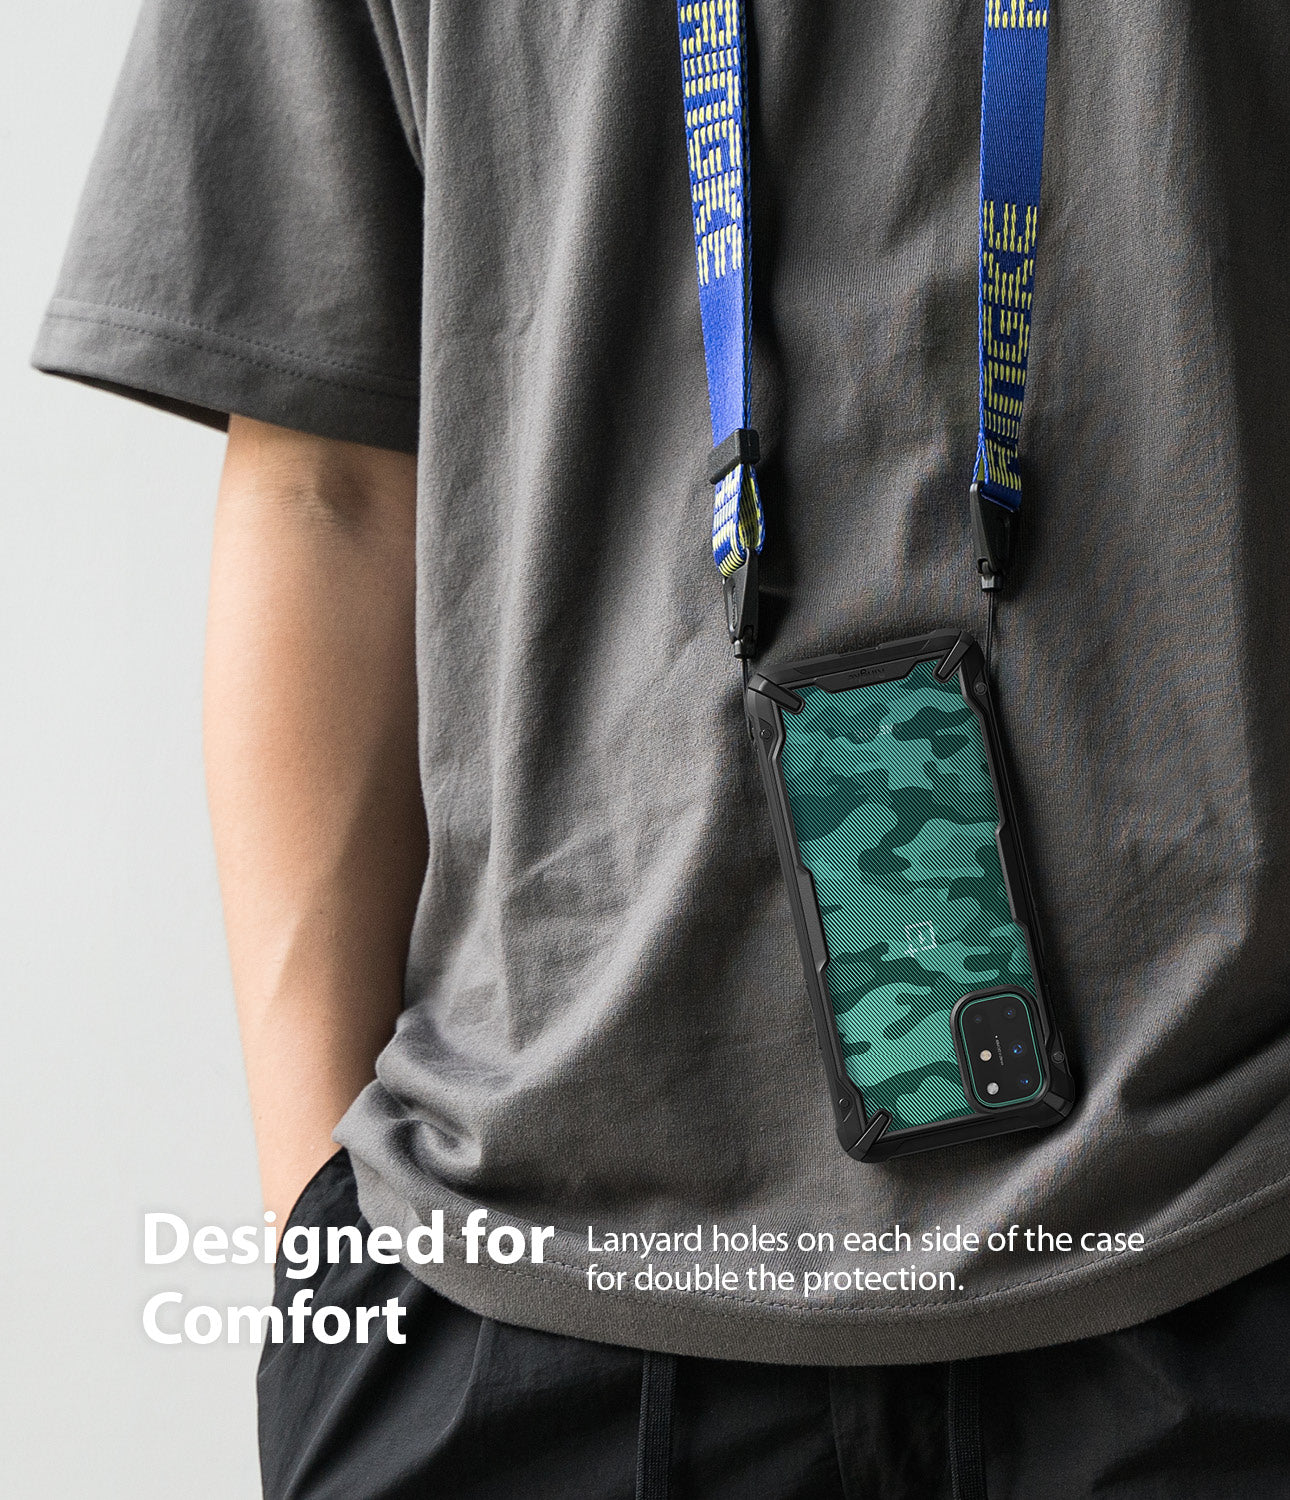 lanyard holes on each side of the case for double the protection